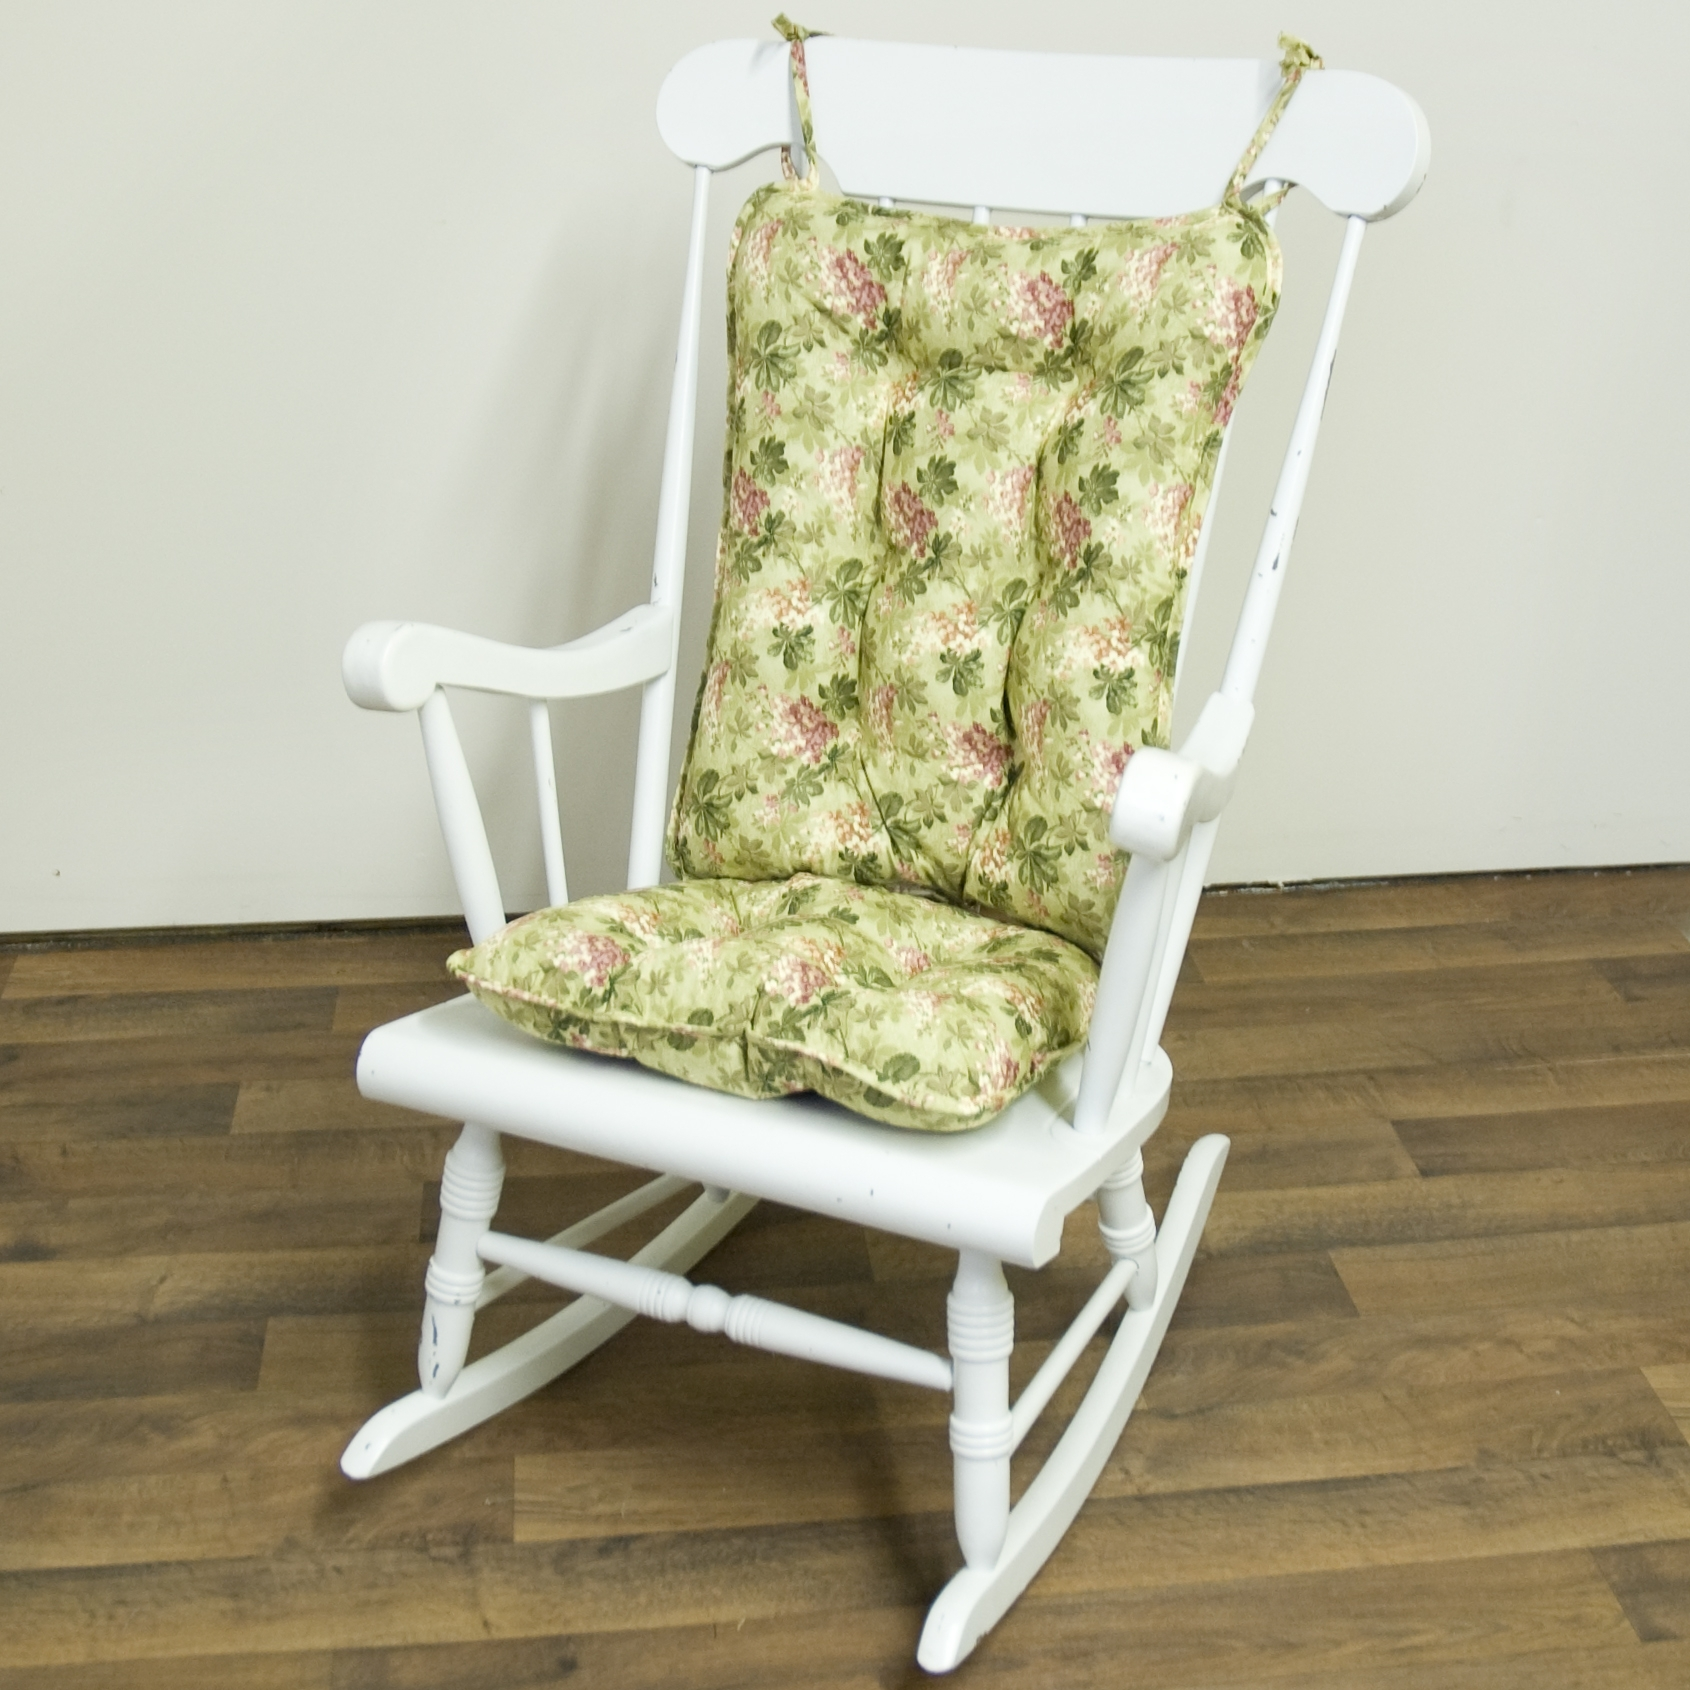 Outdoor Rocking Chair Cushions Flower : Beautiful Outdoor Rocking Within Outdoor Rocking Chairs With Cushions (#12 of 15)